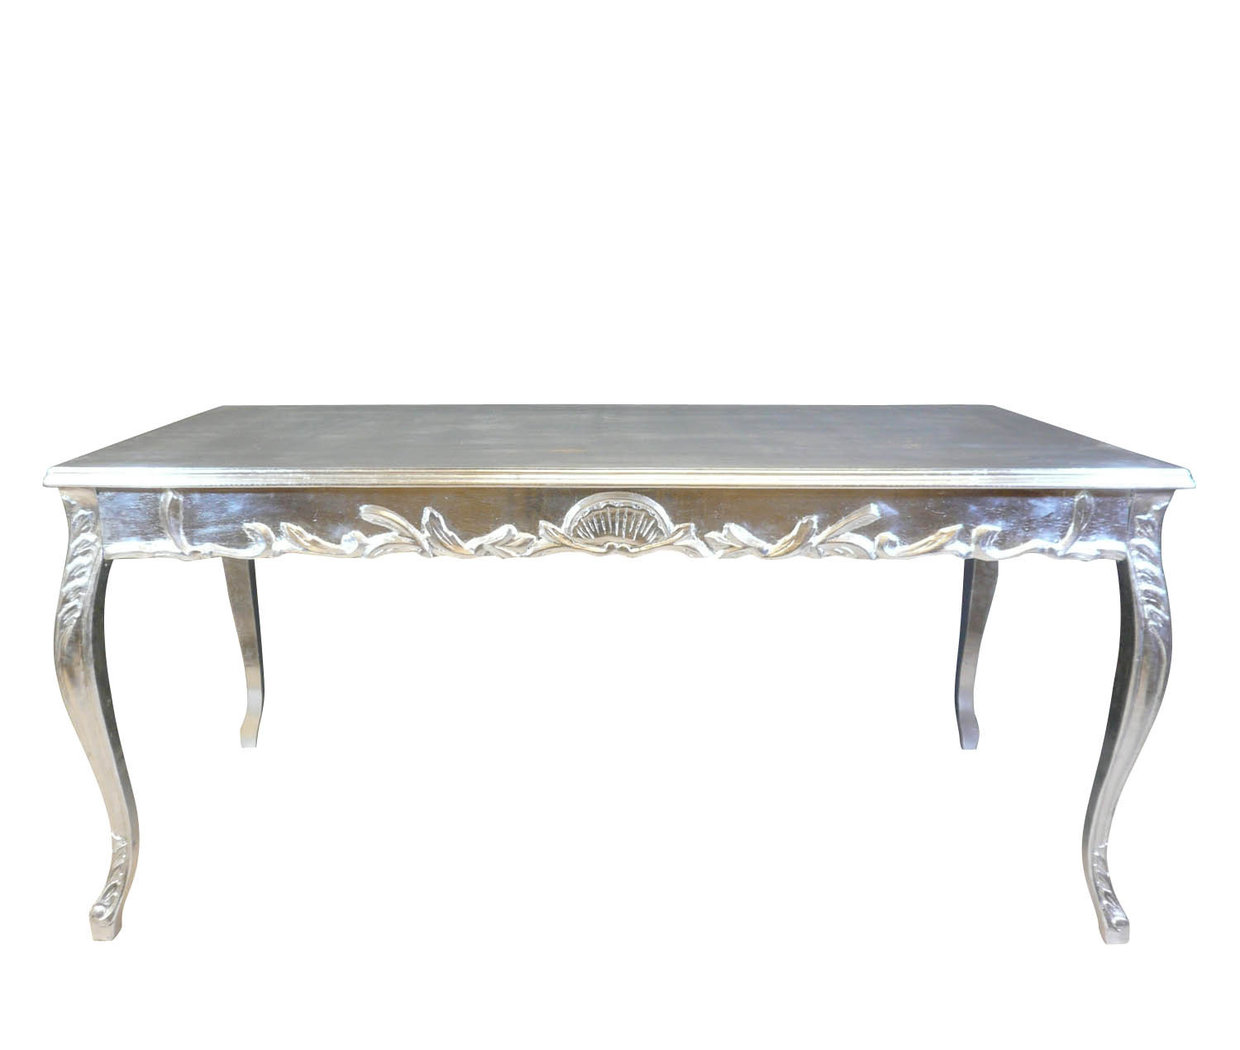 Baroque table baroque furniture tiffany lamp art deco baroque table baroque table geotapseo Image collections